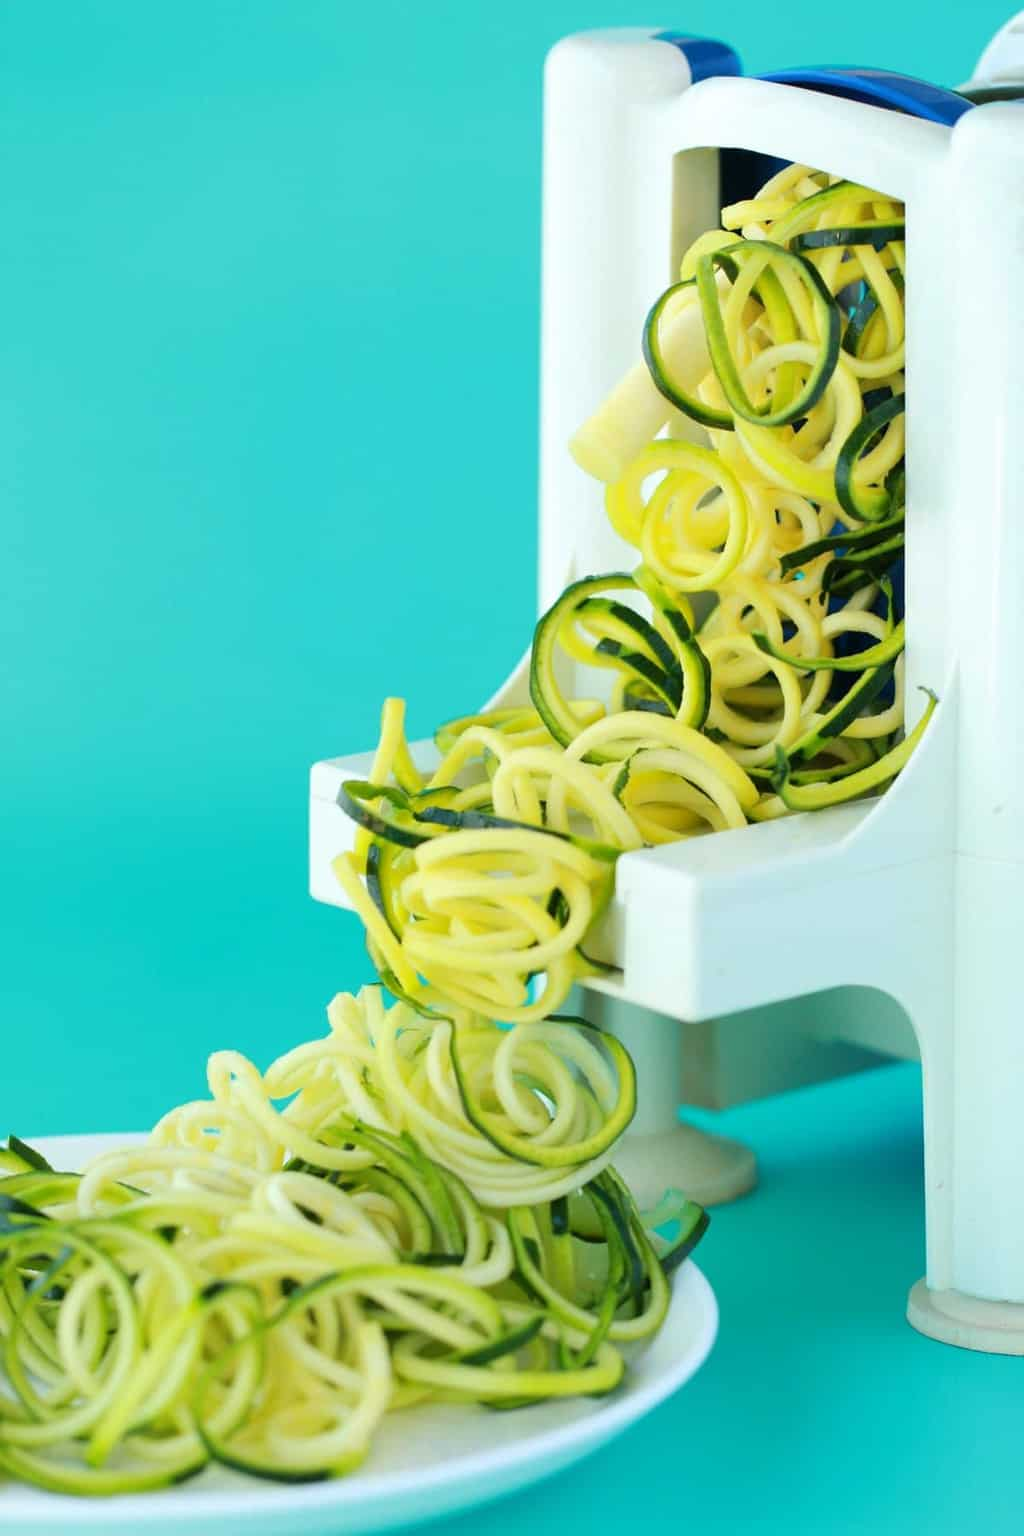 Making Zucchini Noodles with Tahini Sauce #vegan #lovingitvegan #zucchini #rawvegan | lovingitvegan.com